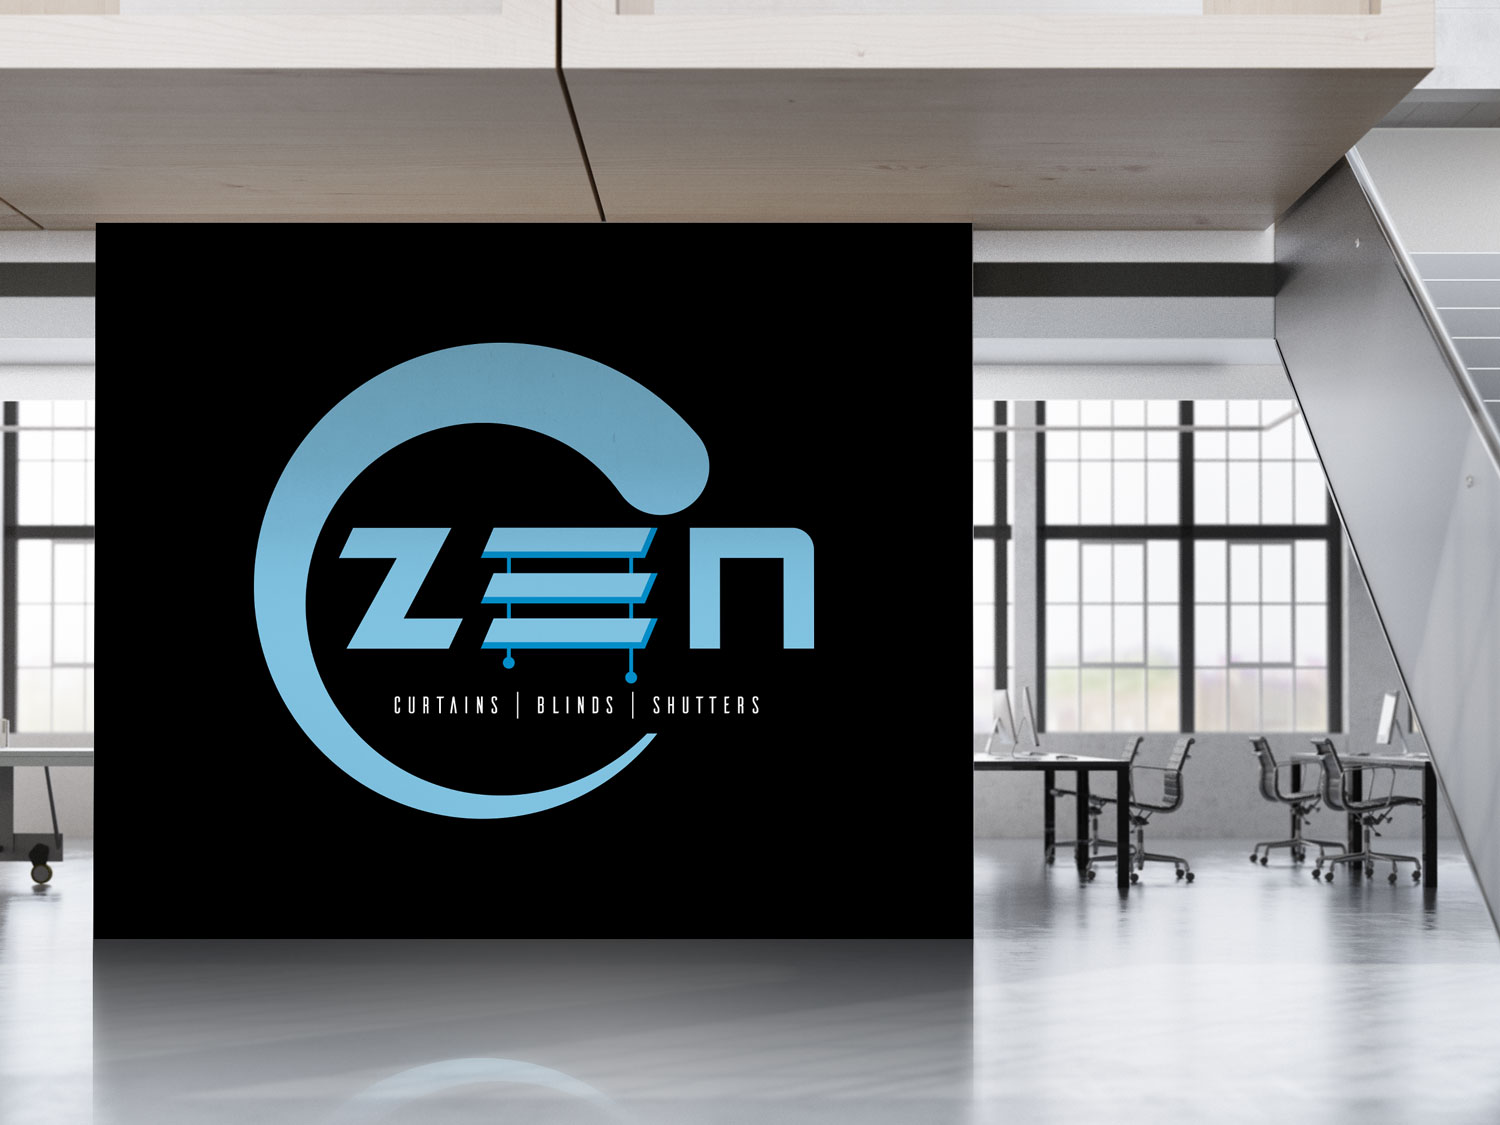 Logo Design by gates_m for Zen Curtains & Blinds | Design #14428698